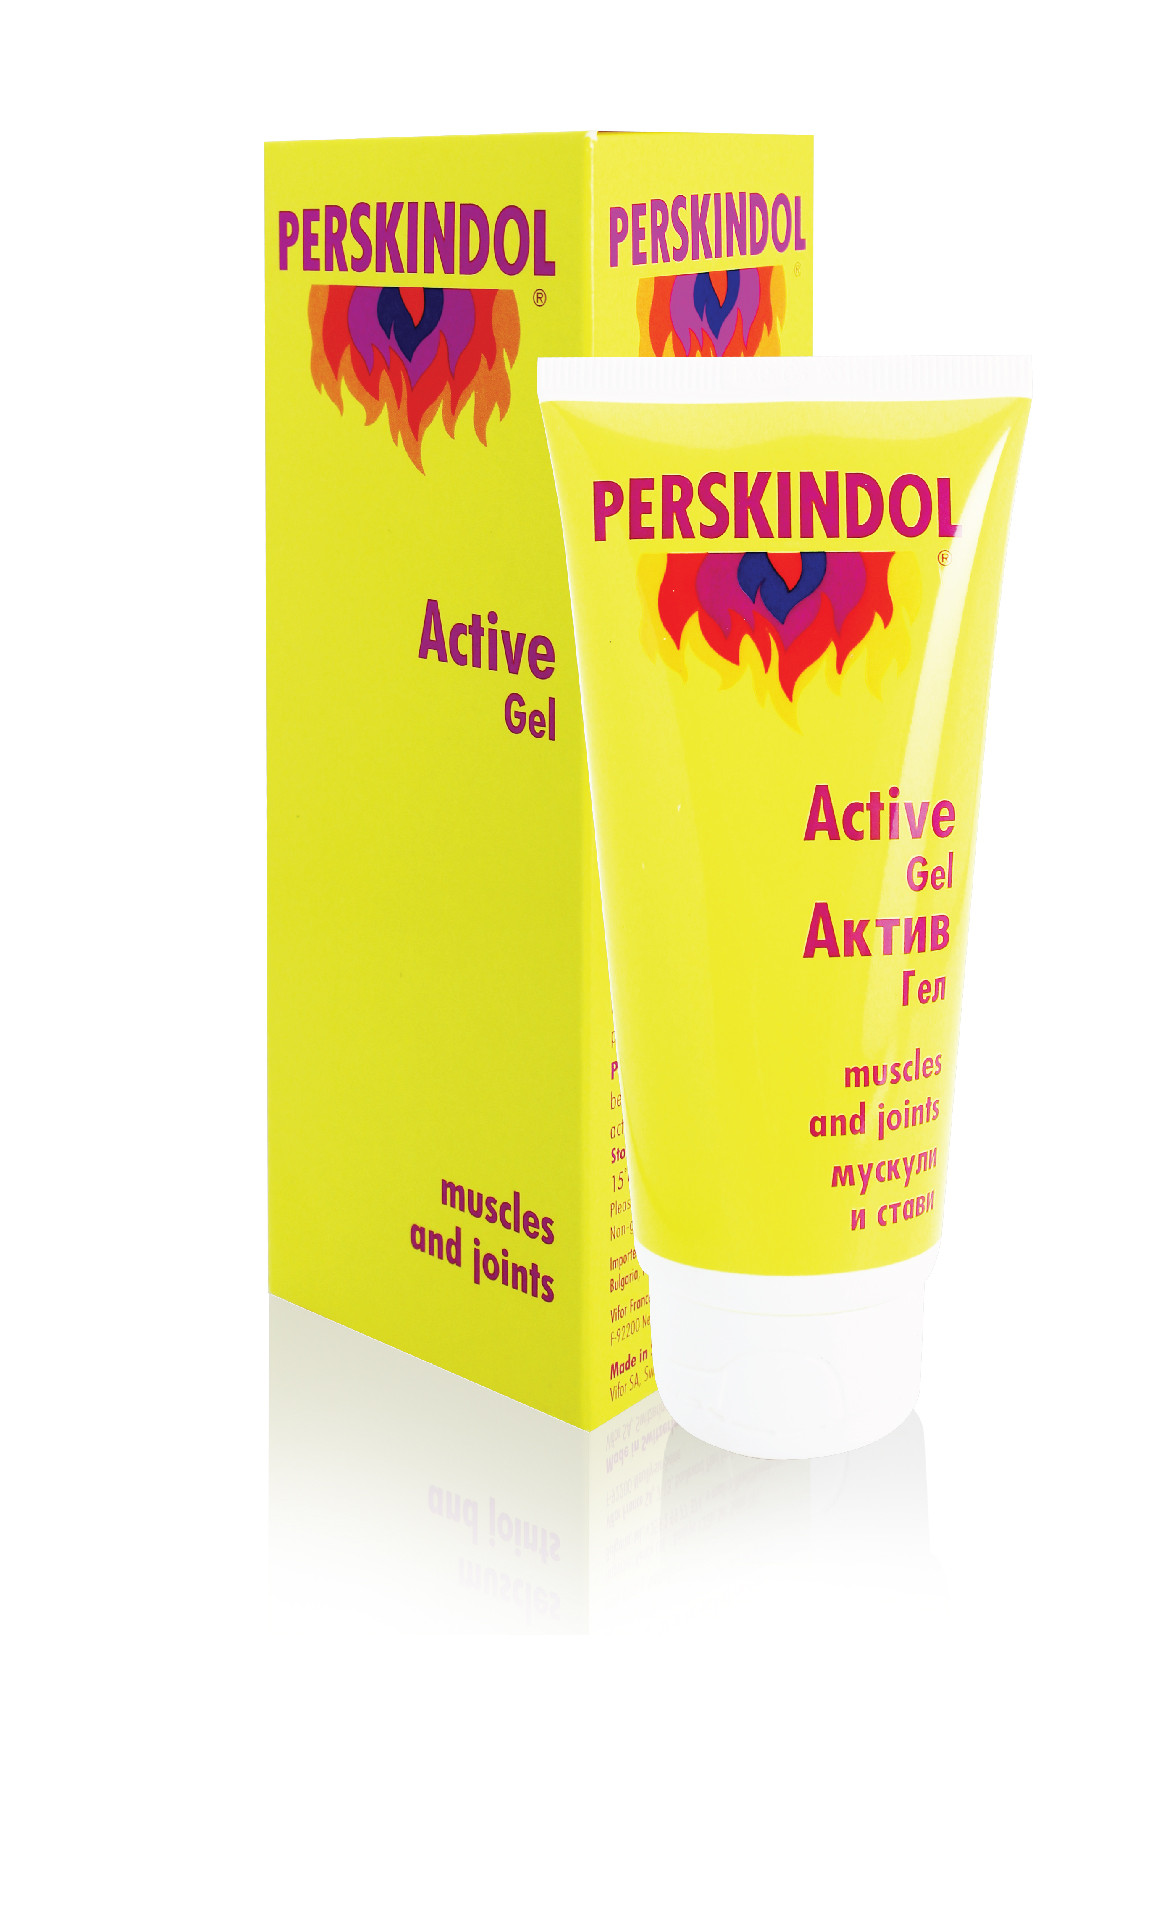 ПЕРСКИНДОЛ Актив гел 100мл КЕНДИ | PERSKINDOL Active gel 100ml KENDY